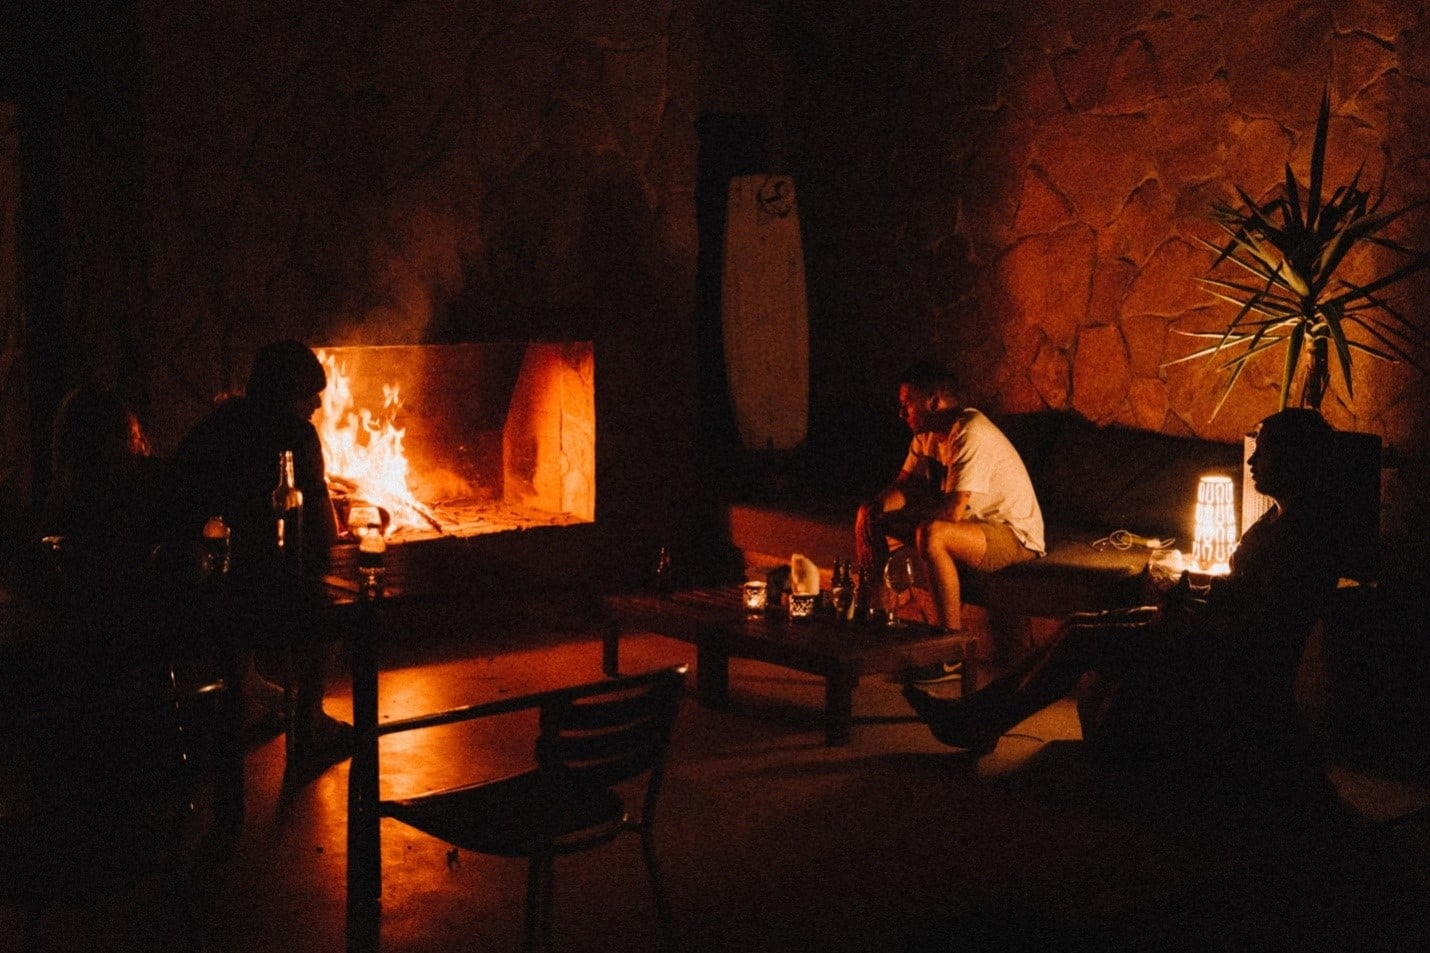 3 people sitting in a living room around a hearth.